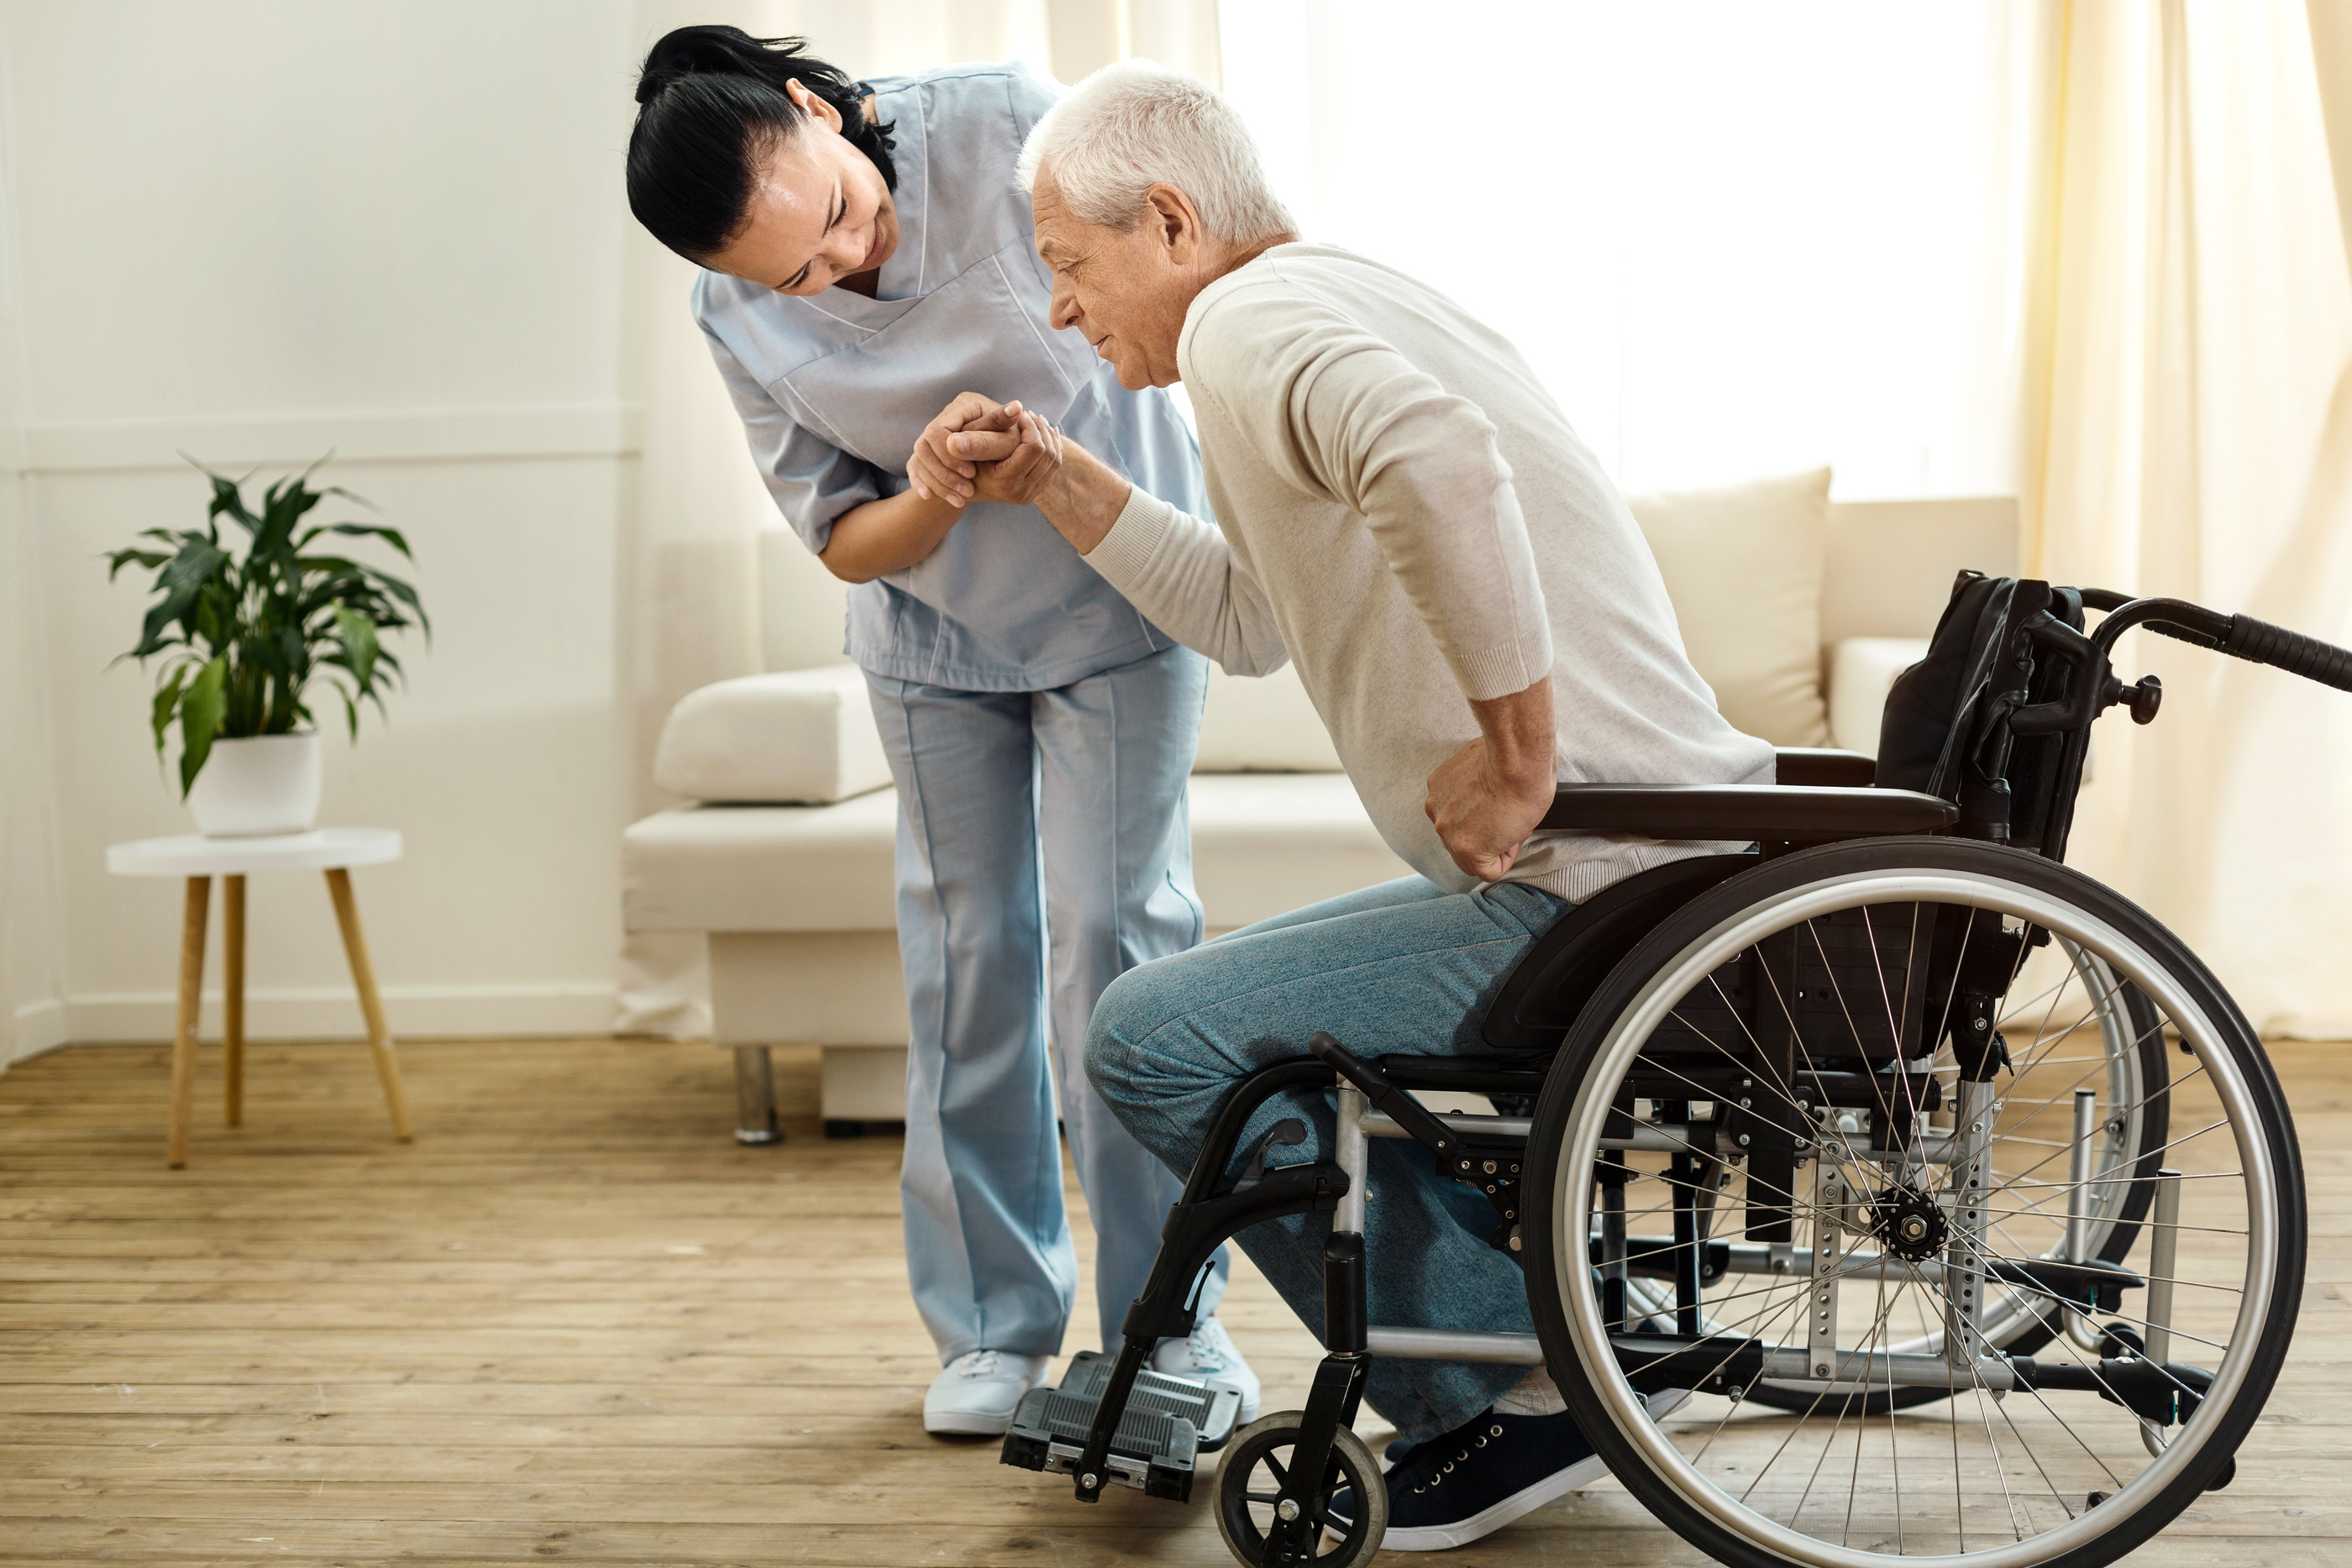 Our caregivers are trained on all durable medical equipment so we may assist your loved one confidently with their wheelchair, walker, cane, bedside commode, or Hoyer lifts. Our caregivers receive extensive transfer training to provide safe transfers of your loved ones from the bed to the chair, to the car or commode.